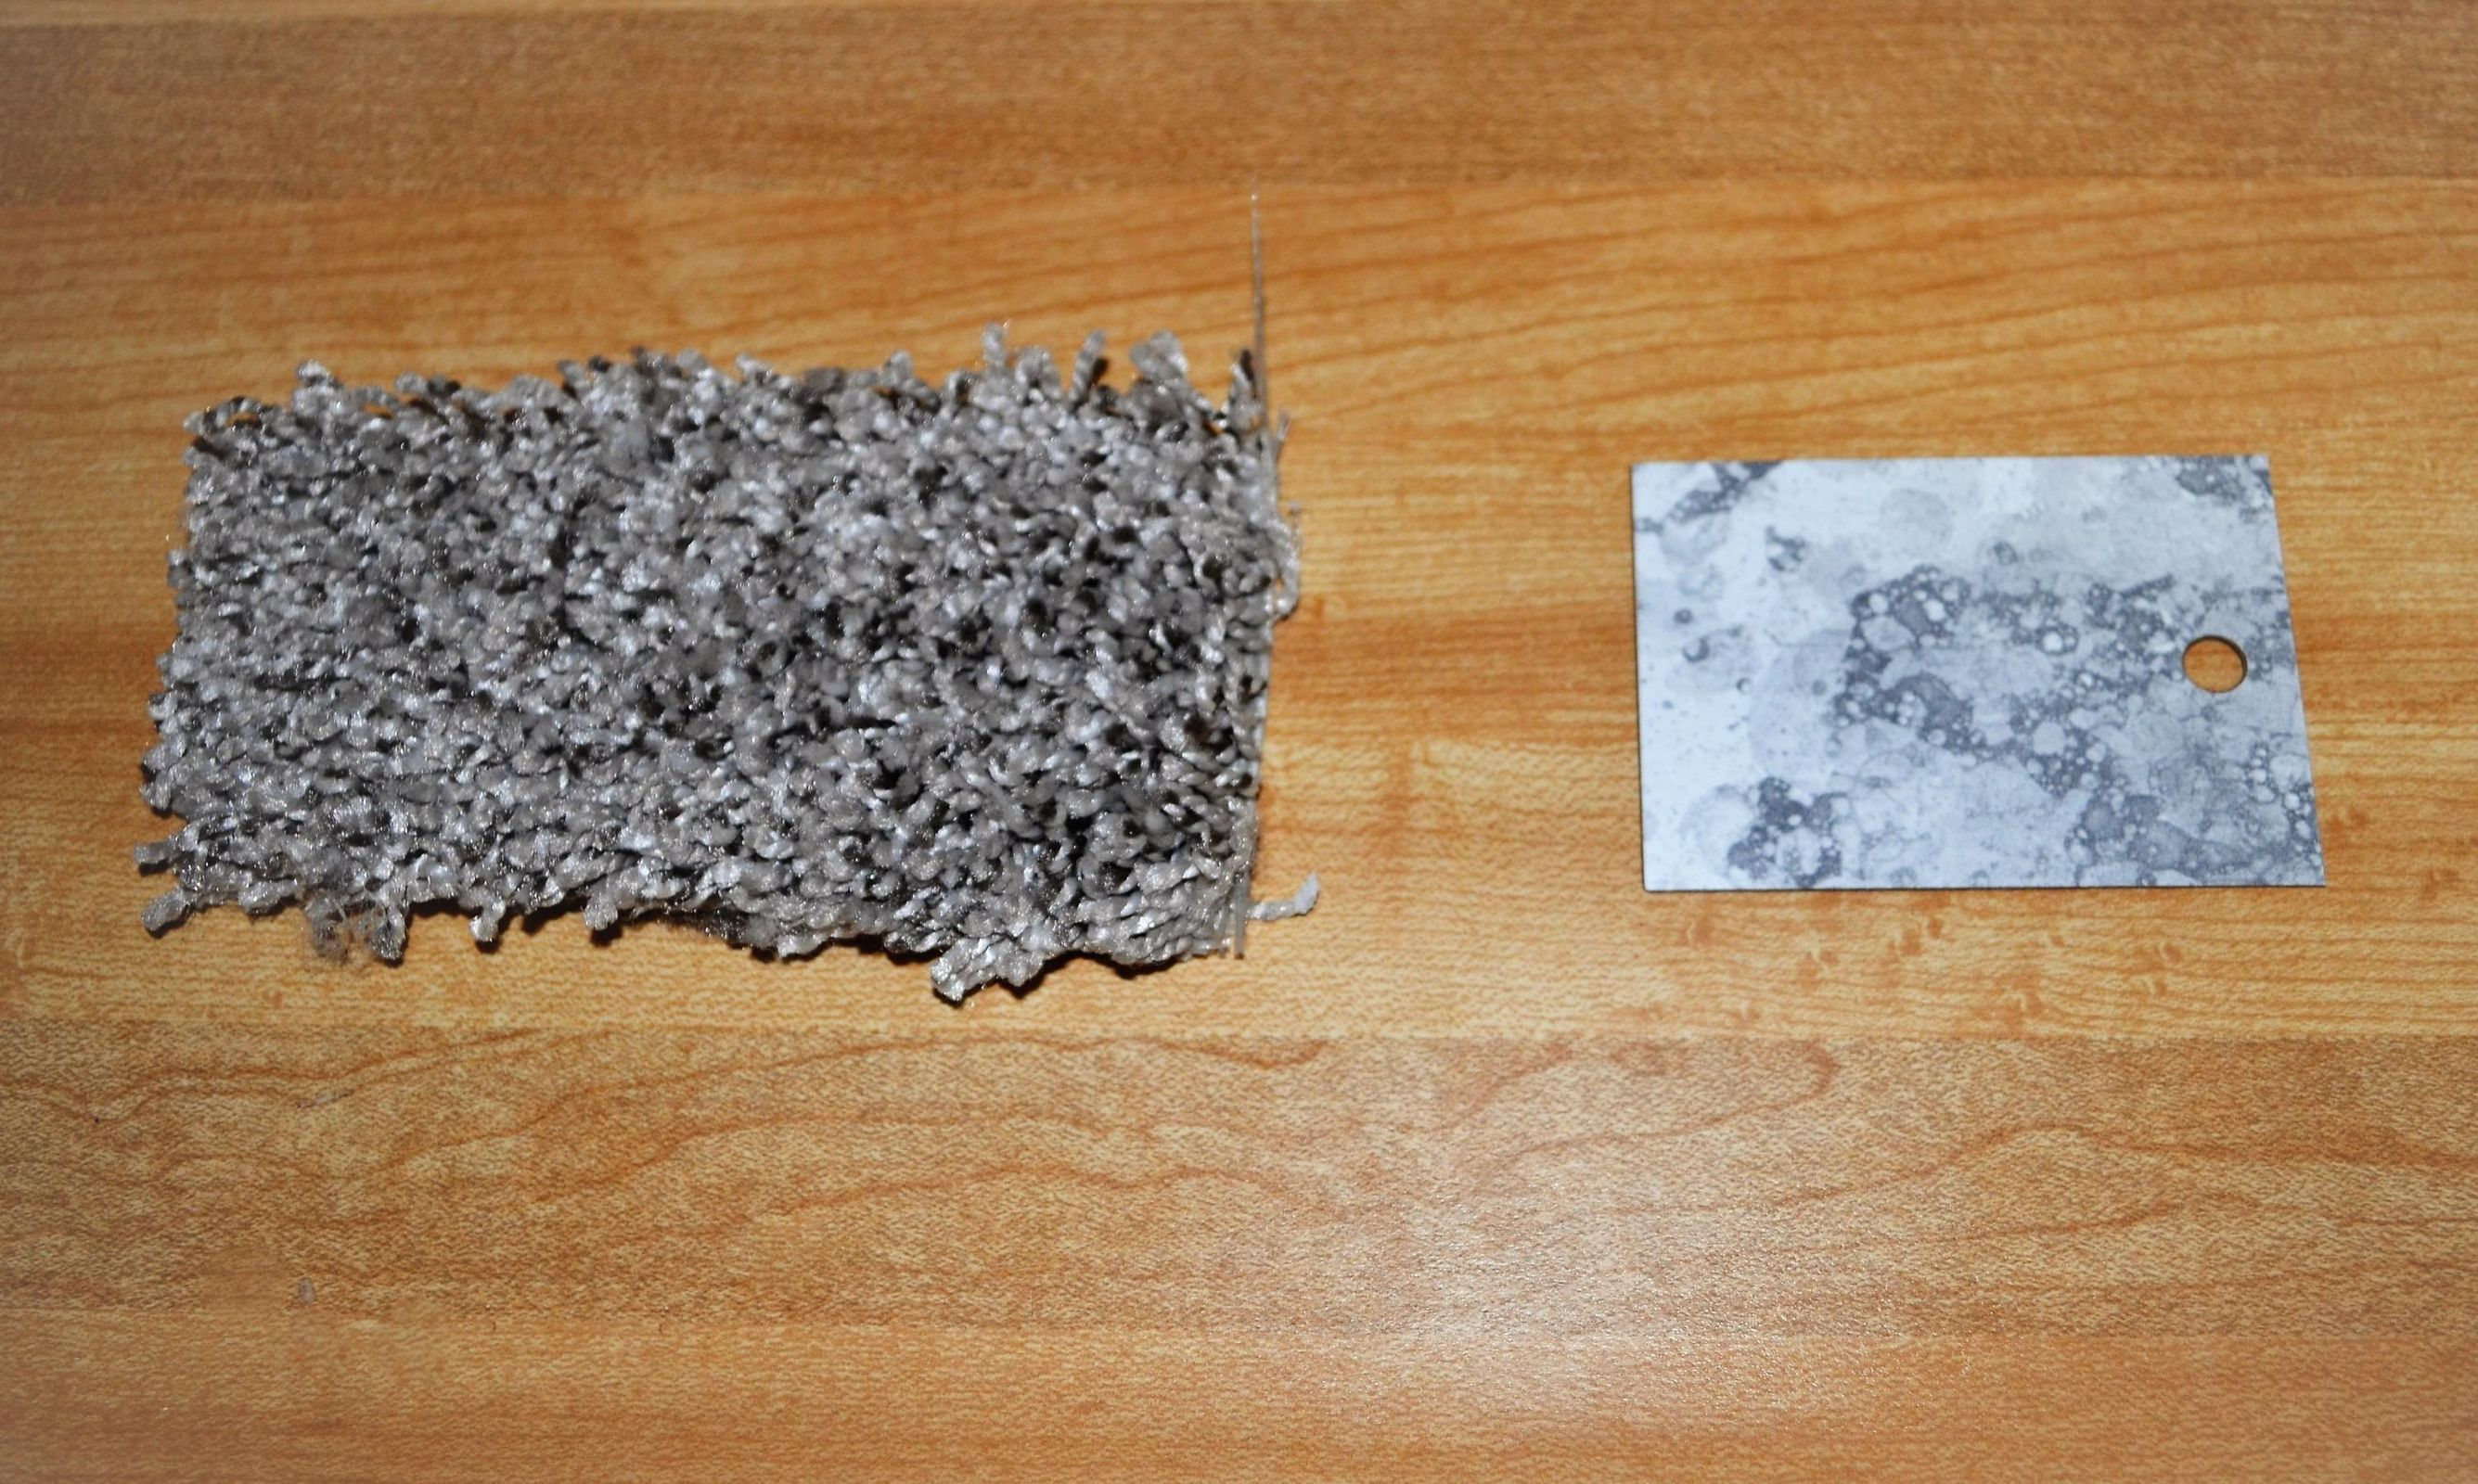 carpet and counter samples